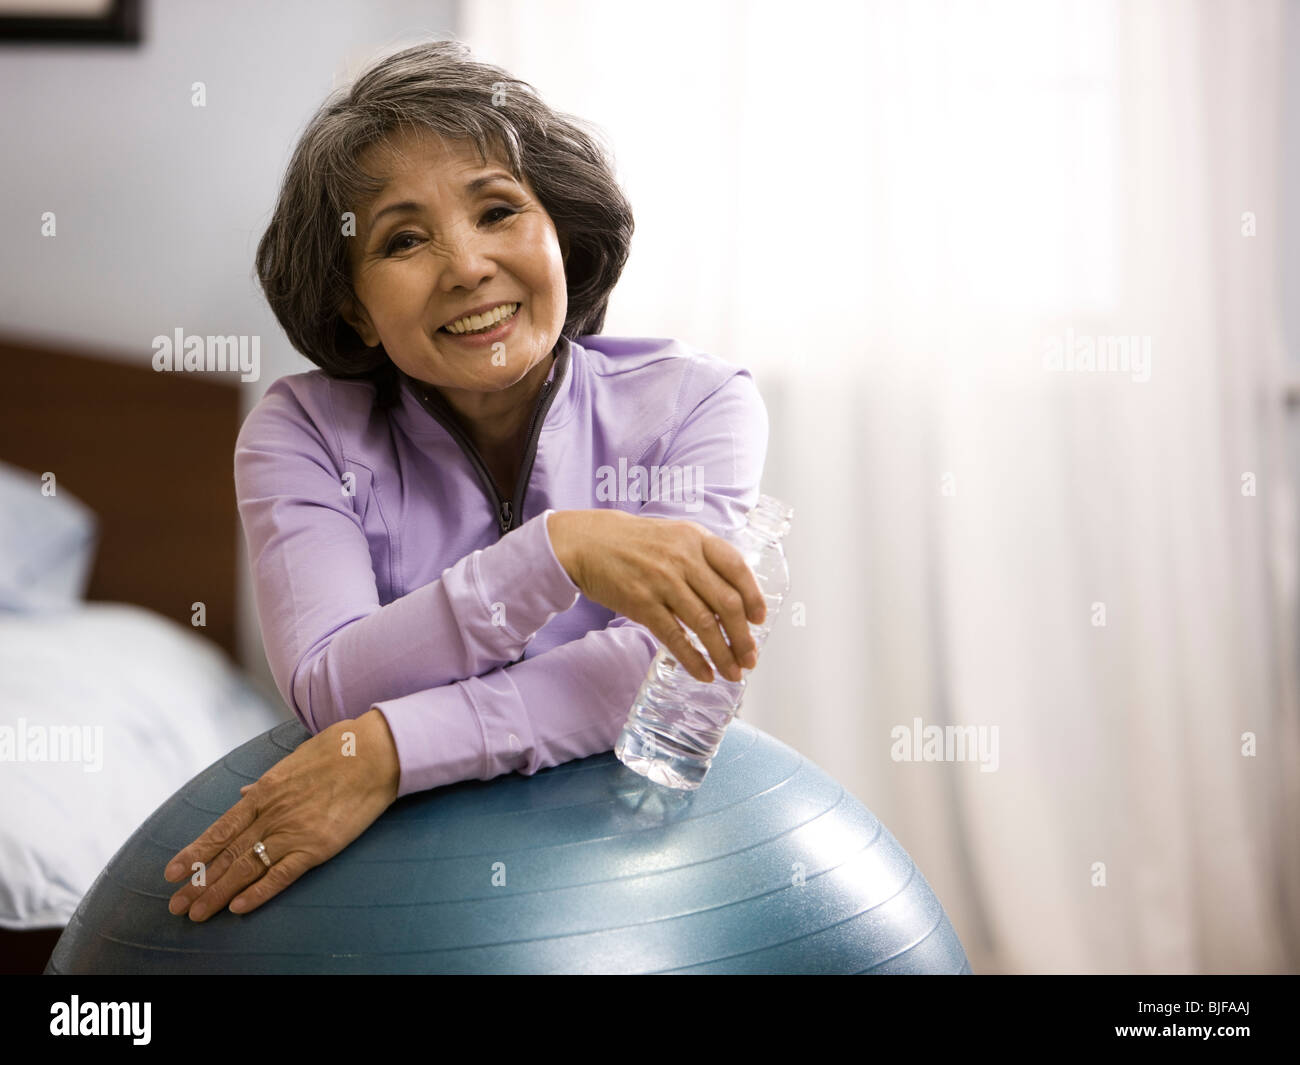 senior woman working out - Stock Image